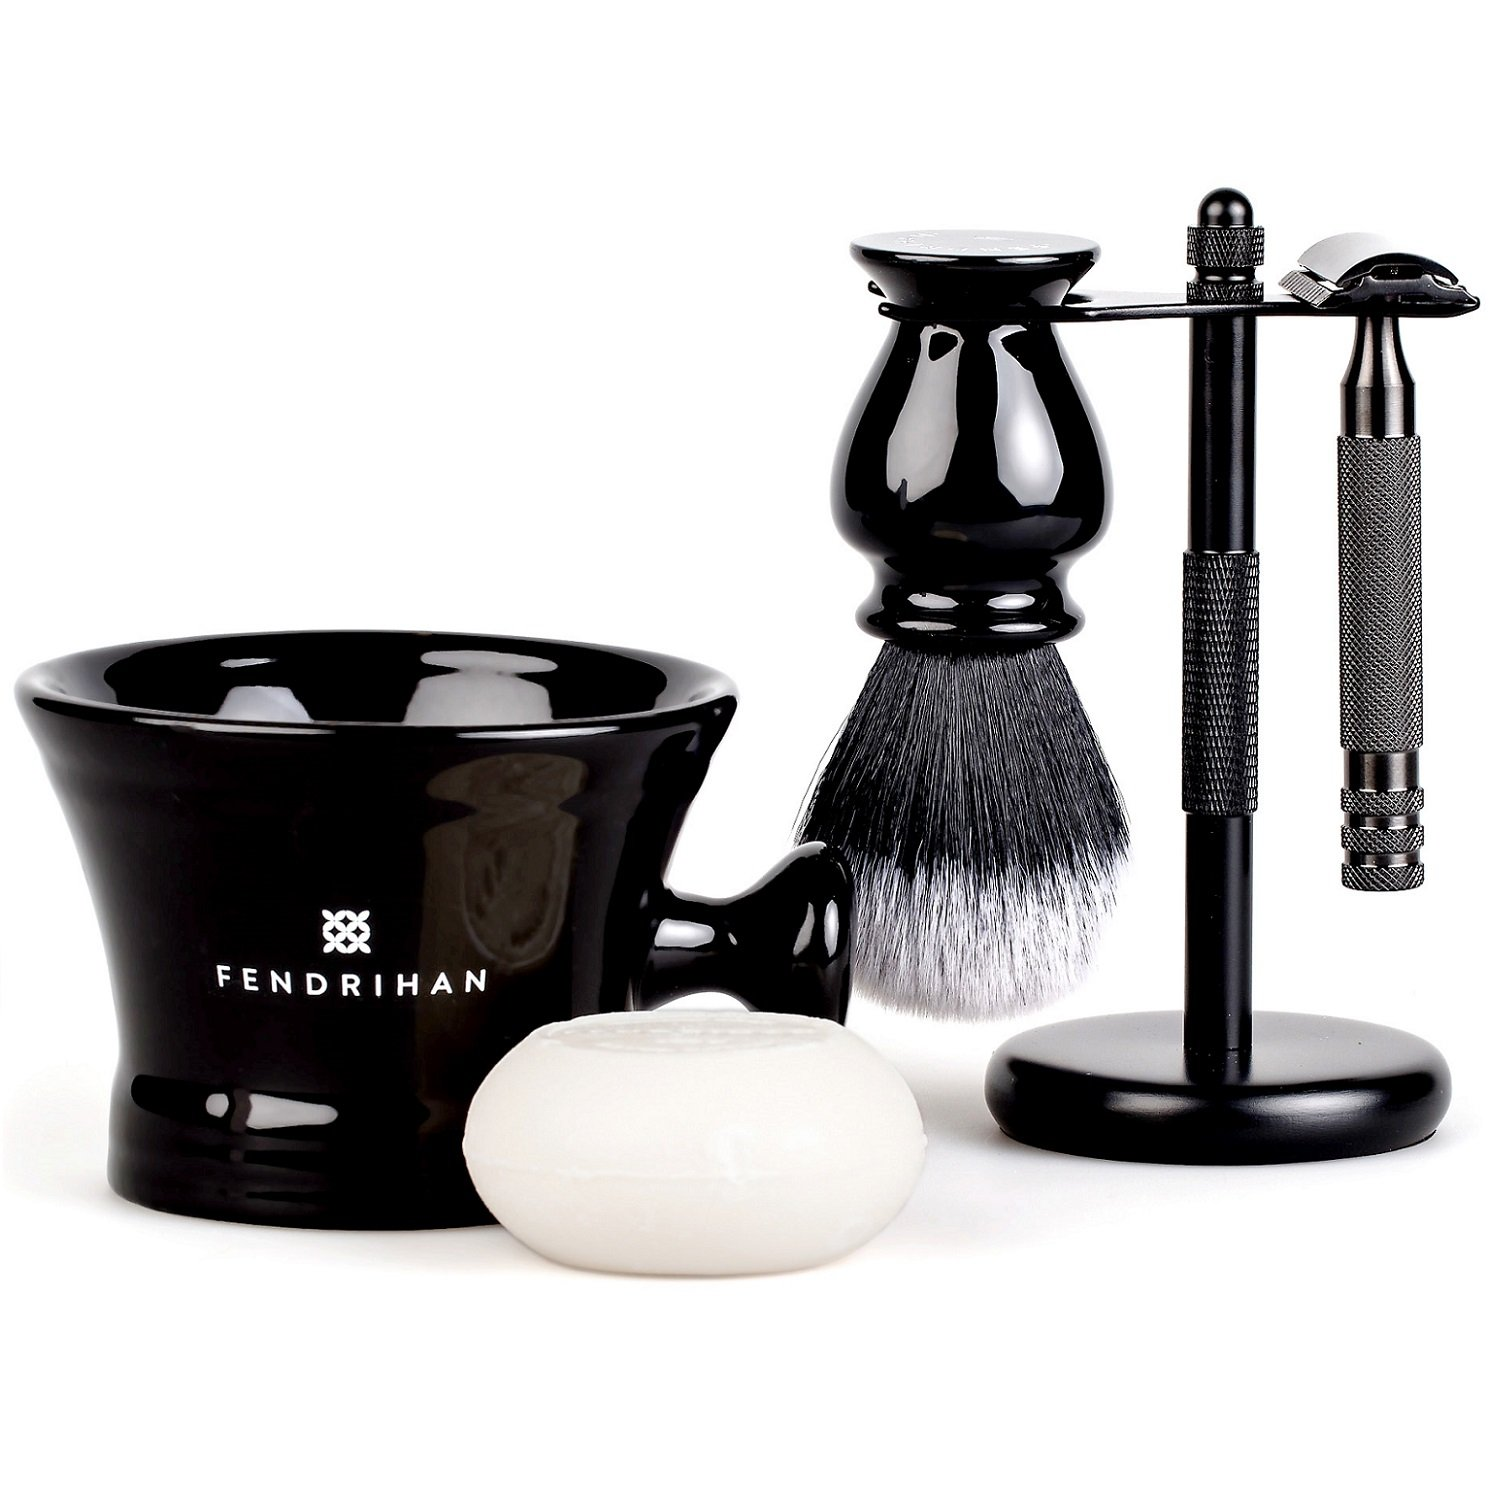 Fendrihan 5-Piece Black Max 74% OFF Shaving Set with Scientist Very popular MK II Stainle